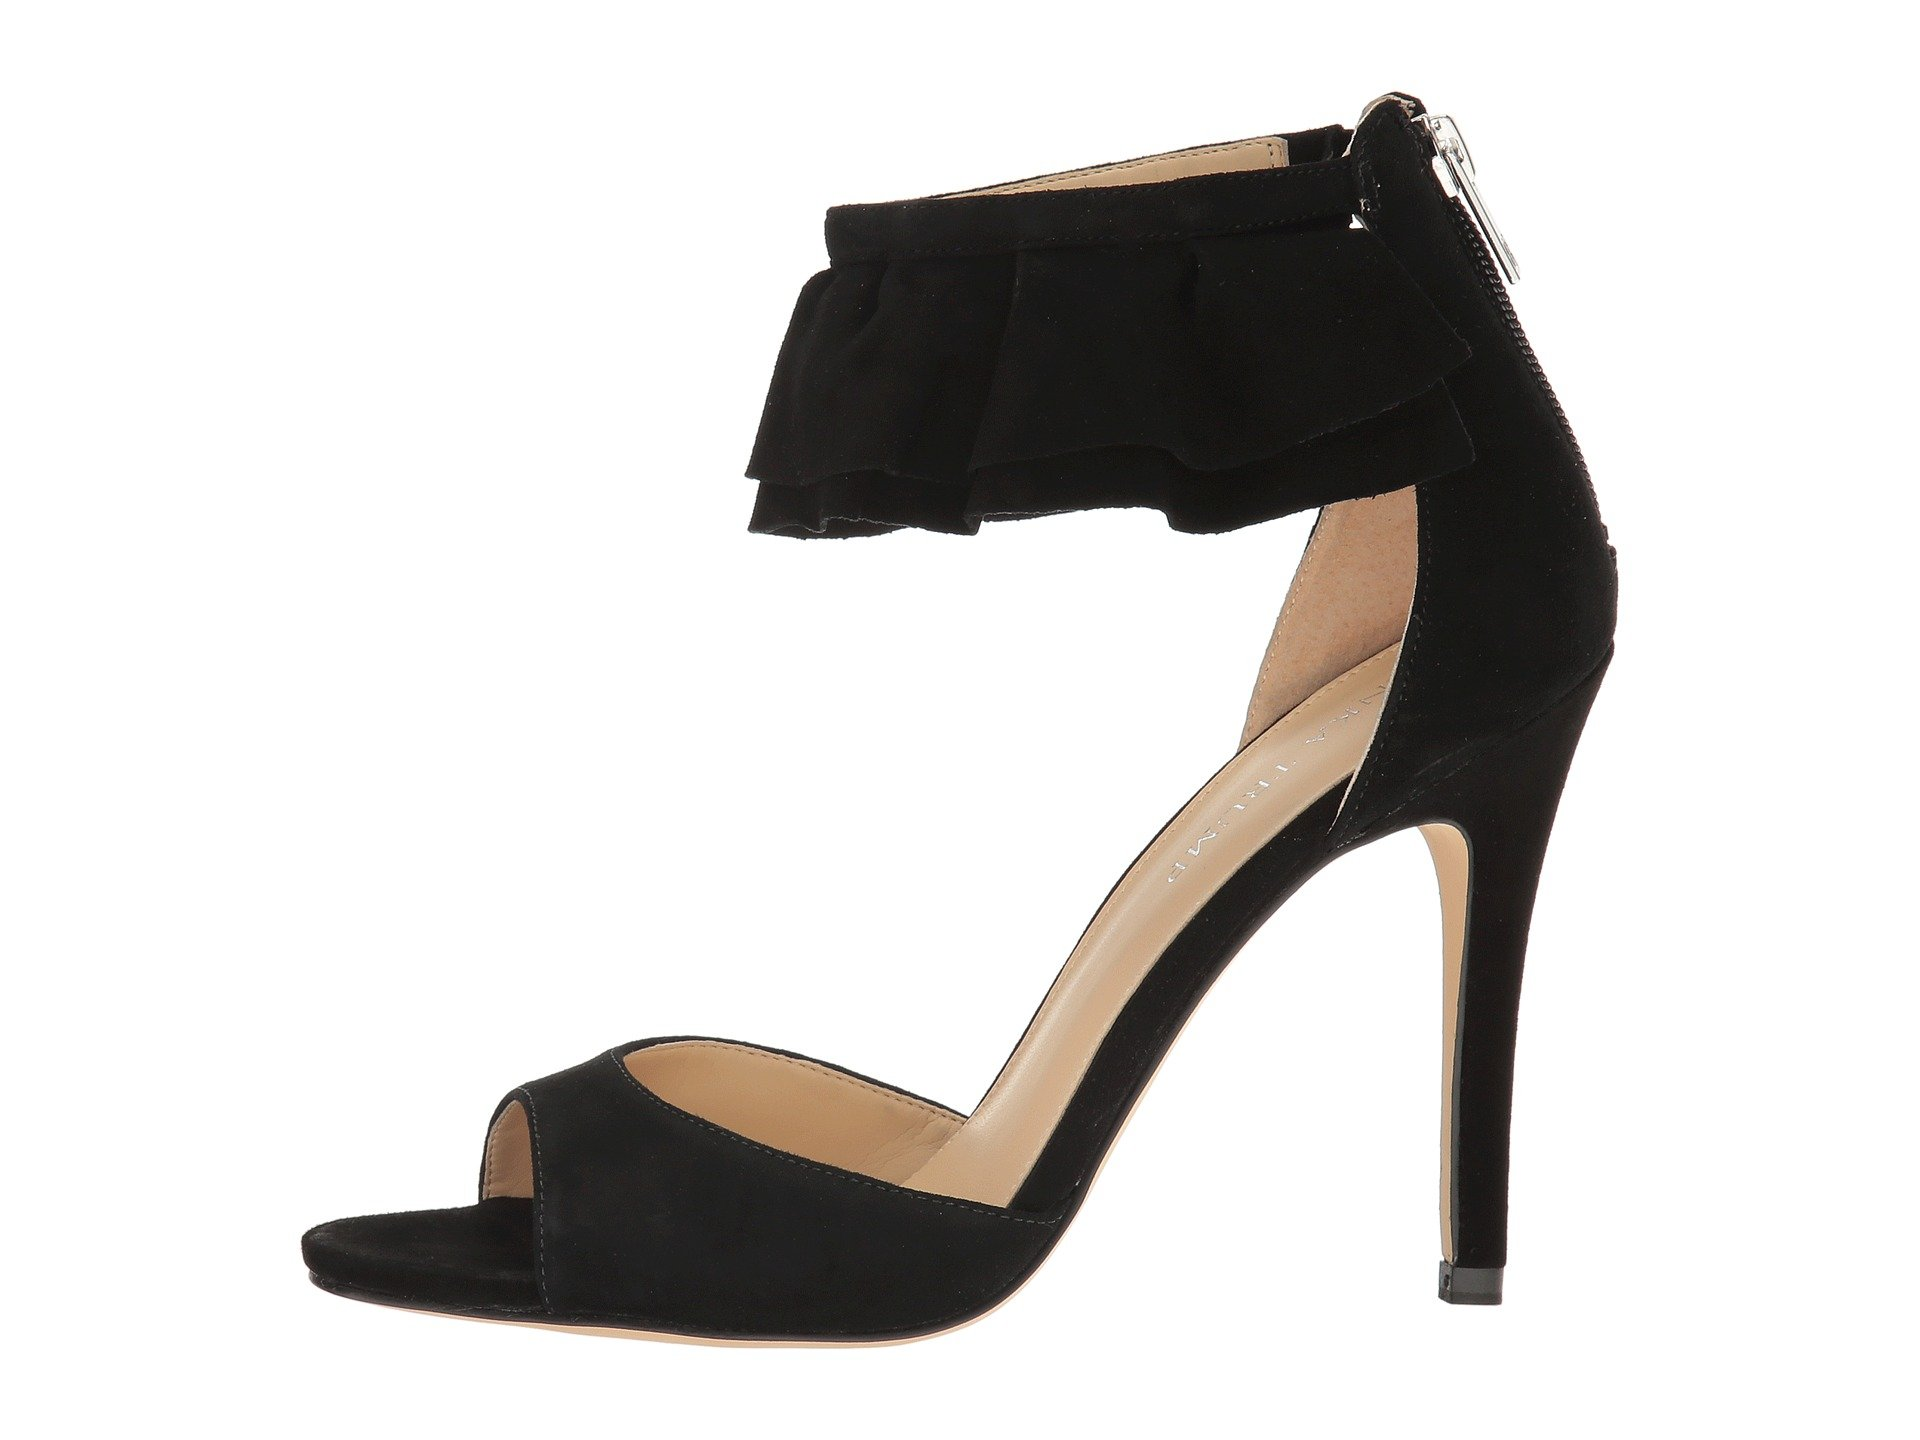 Ivanka Trump Herlle Ruffle Ankle Strap High-Heel Sandals